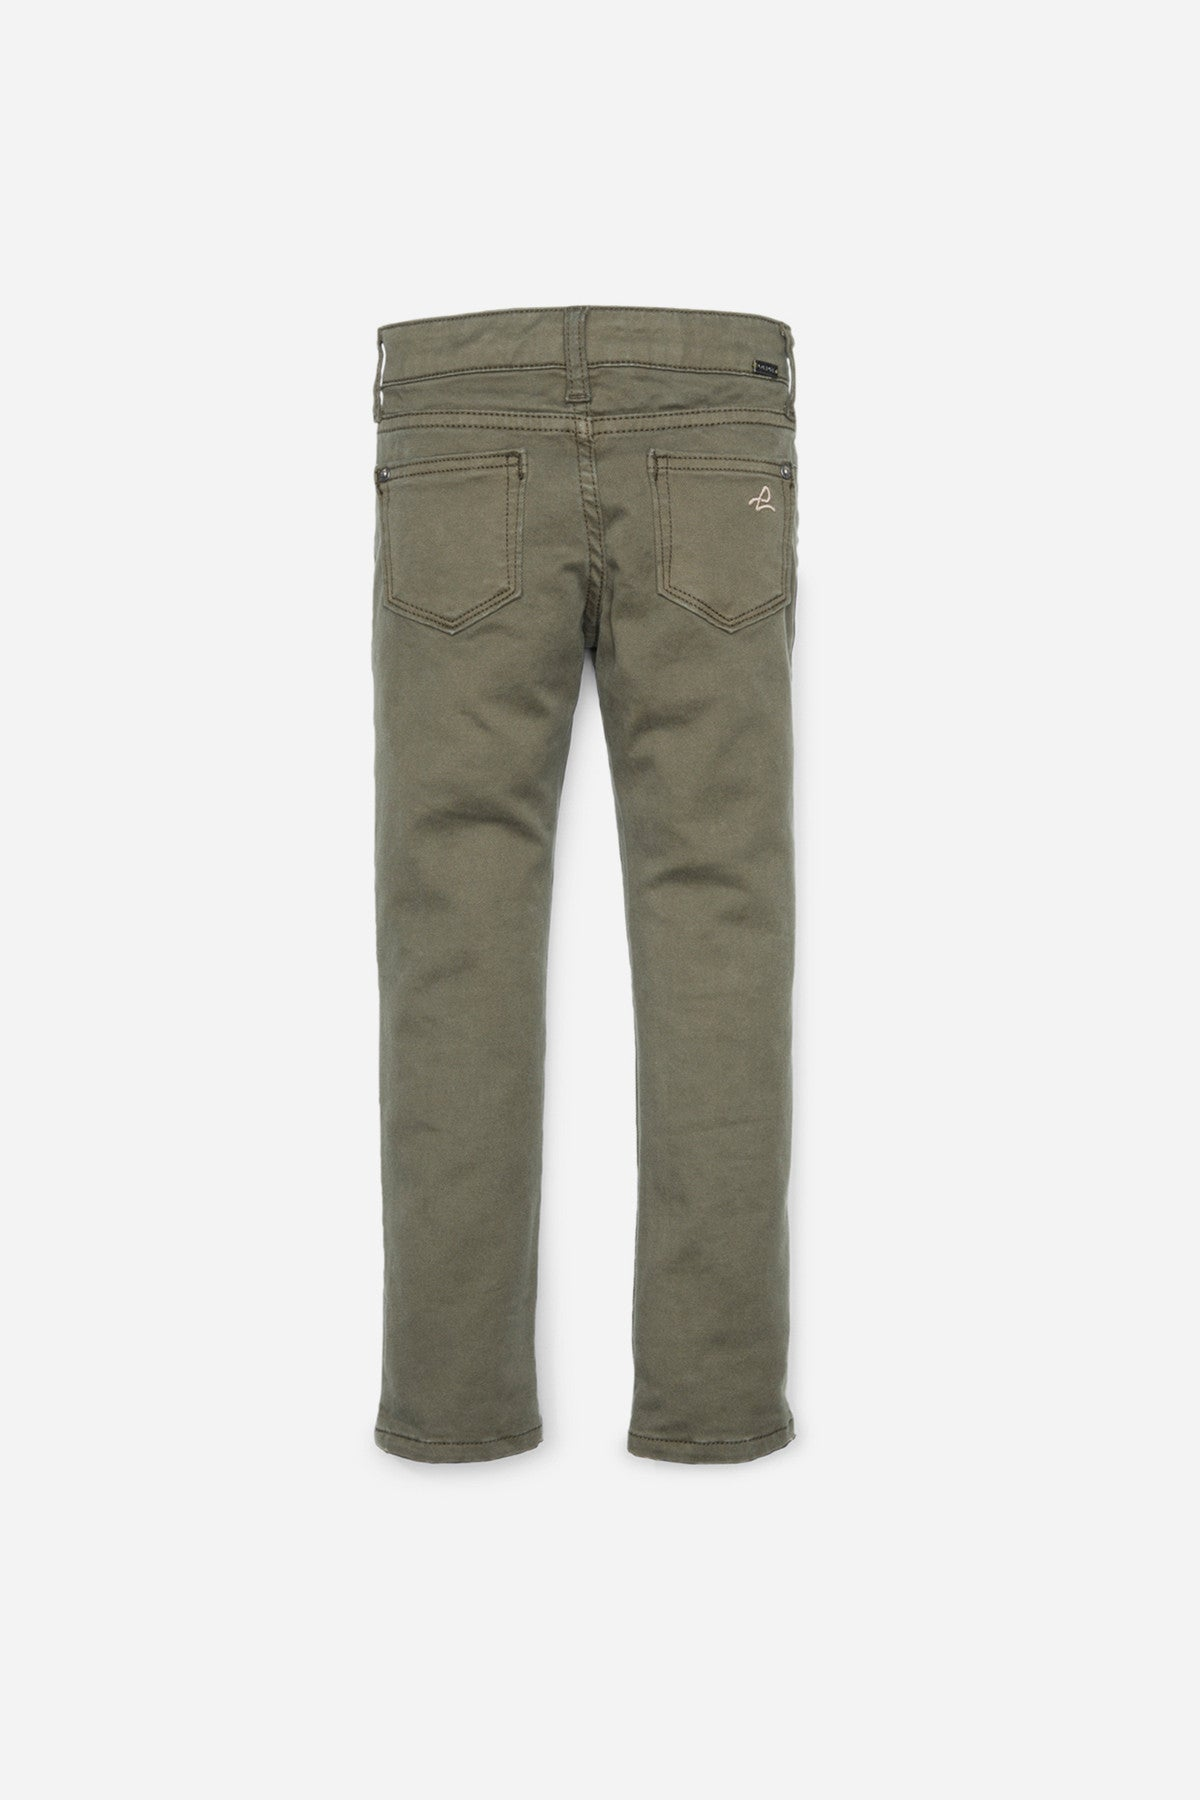 DL1961 Chloe Girls Jeans in Army Green (Sizes 2-6)